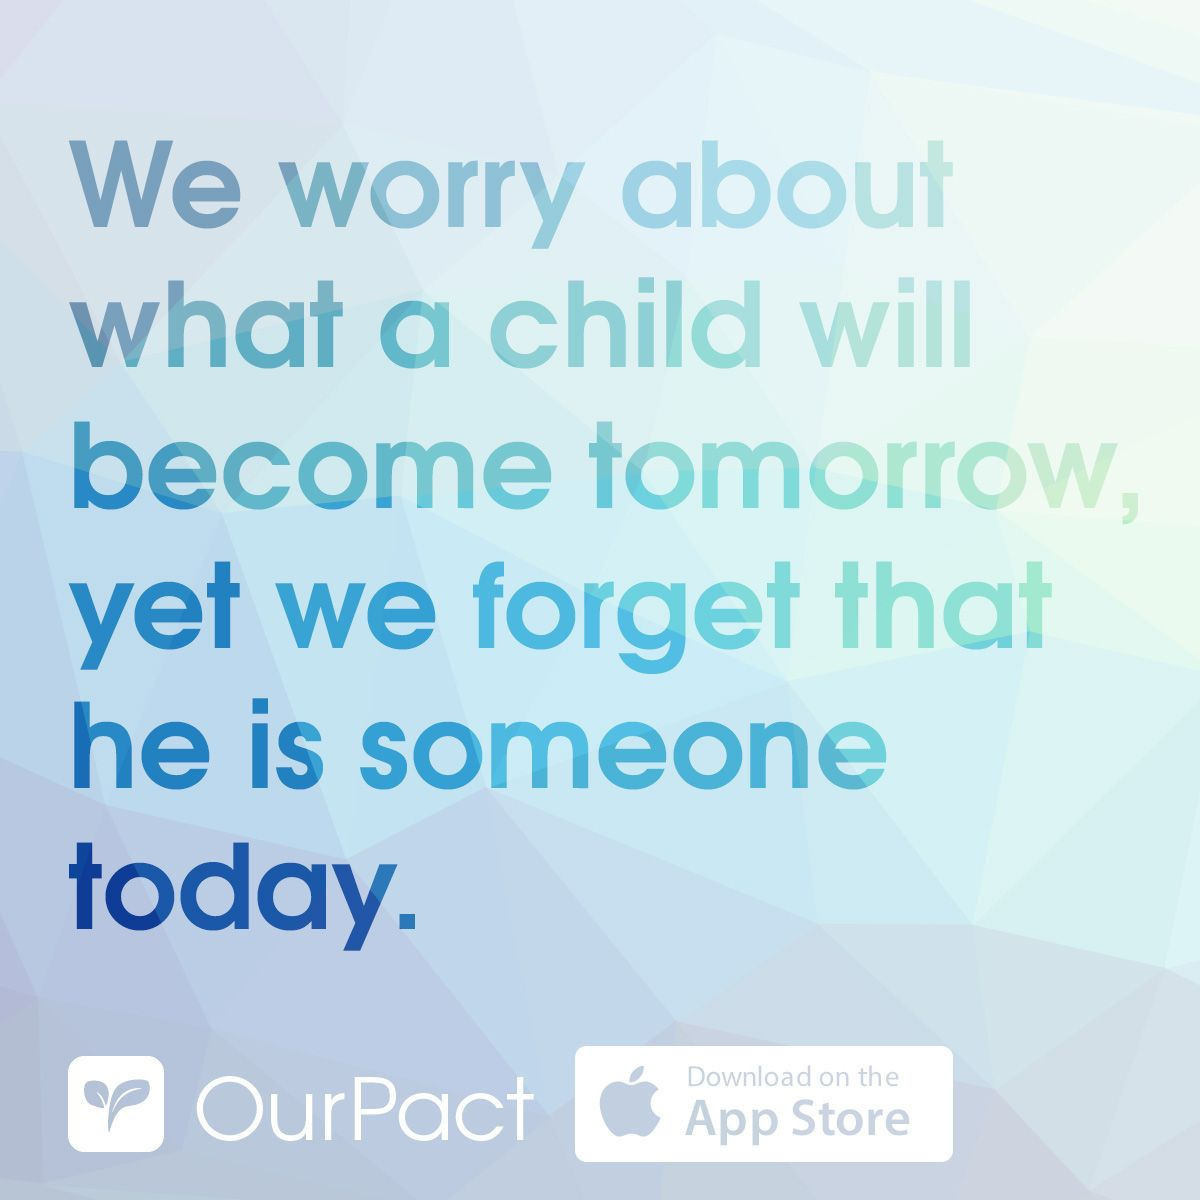 Best App For Daily Inspirational Quotes